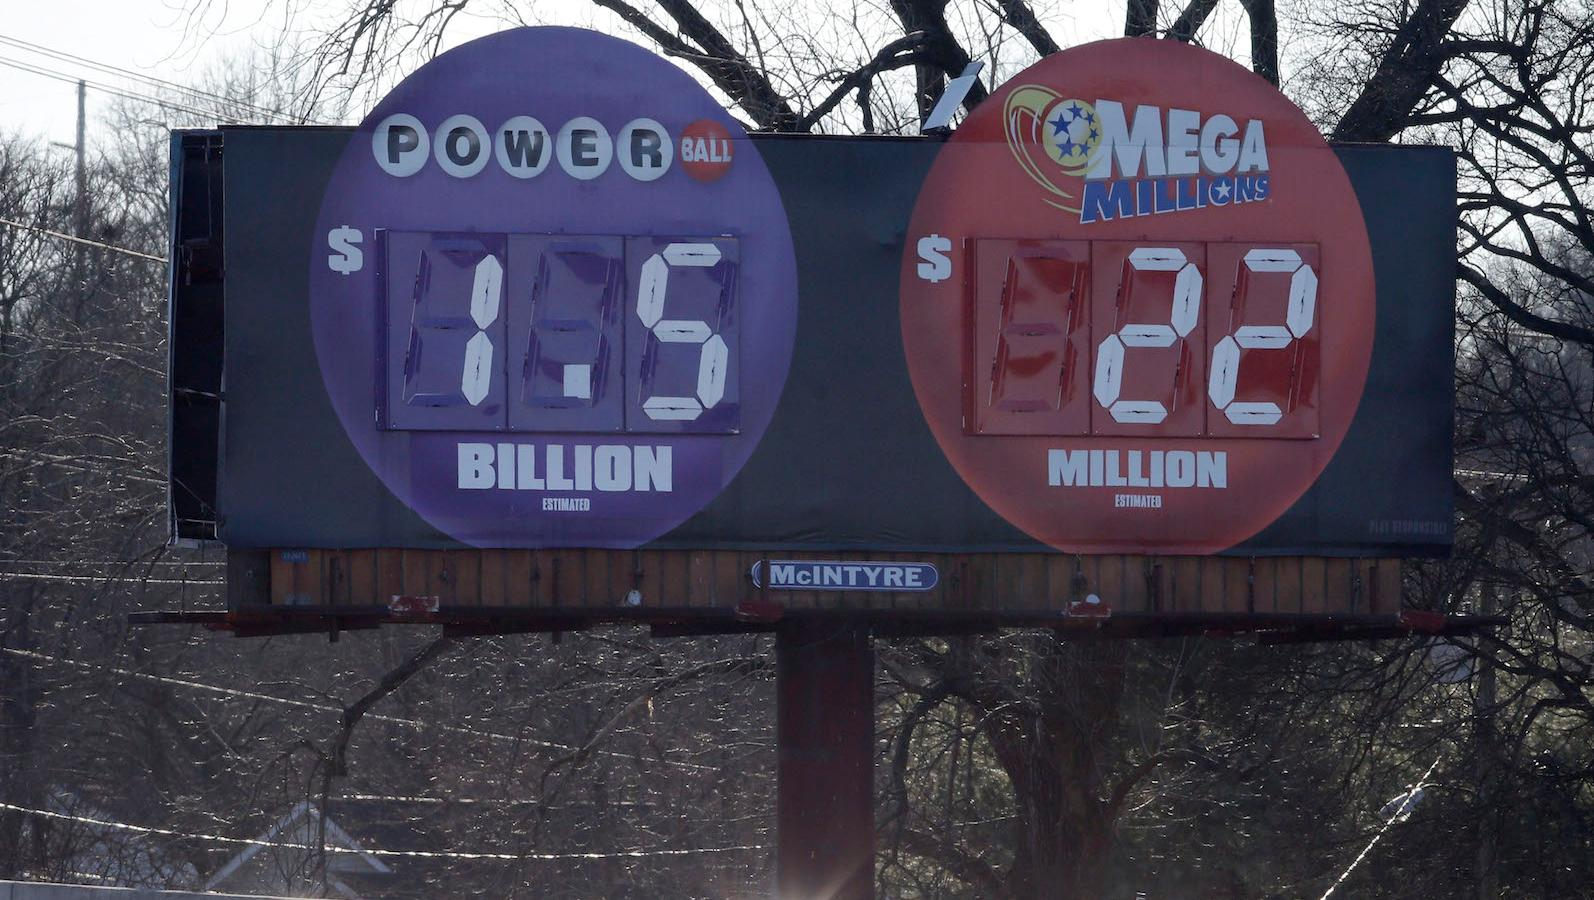 These are the Powerball winning lottery numbers for Jan  13